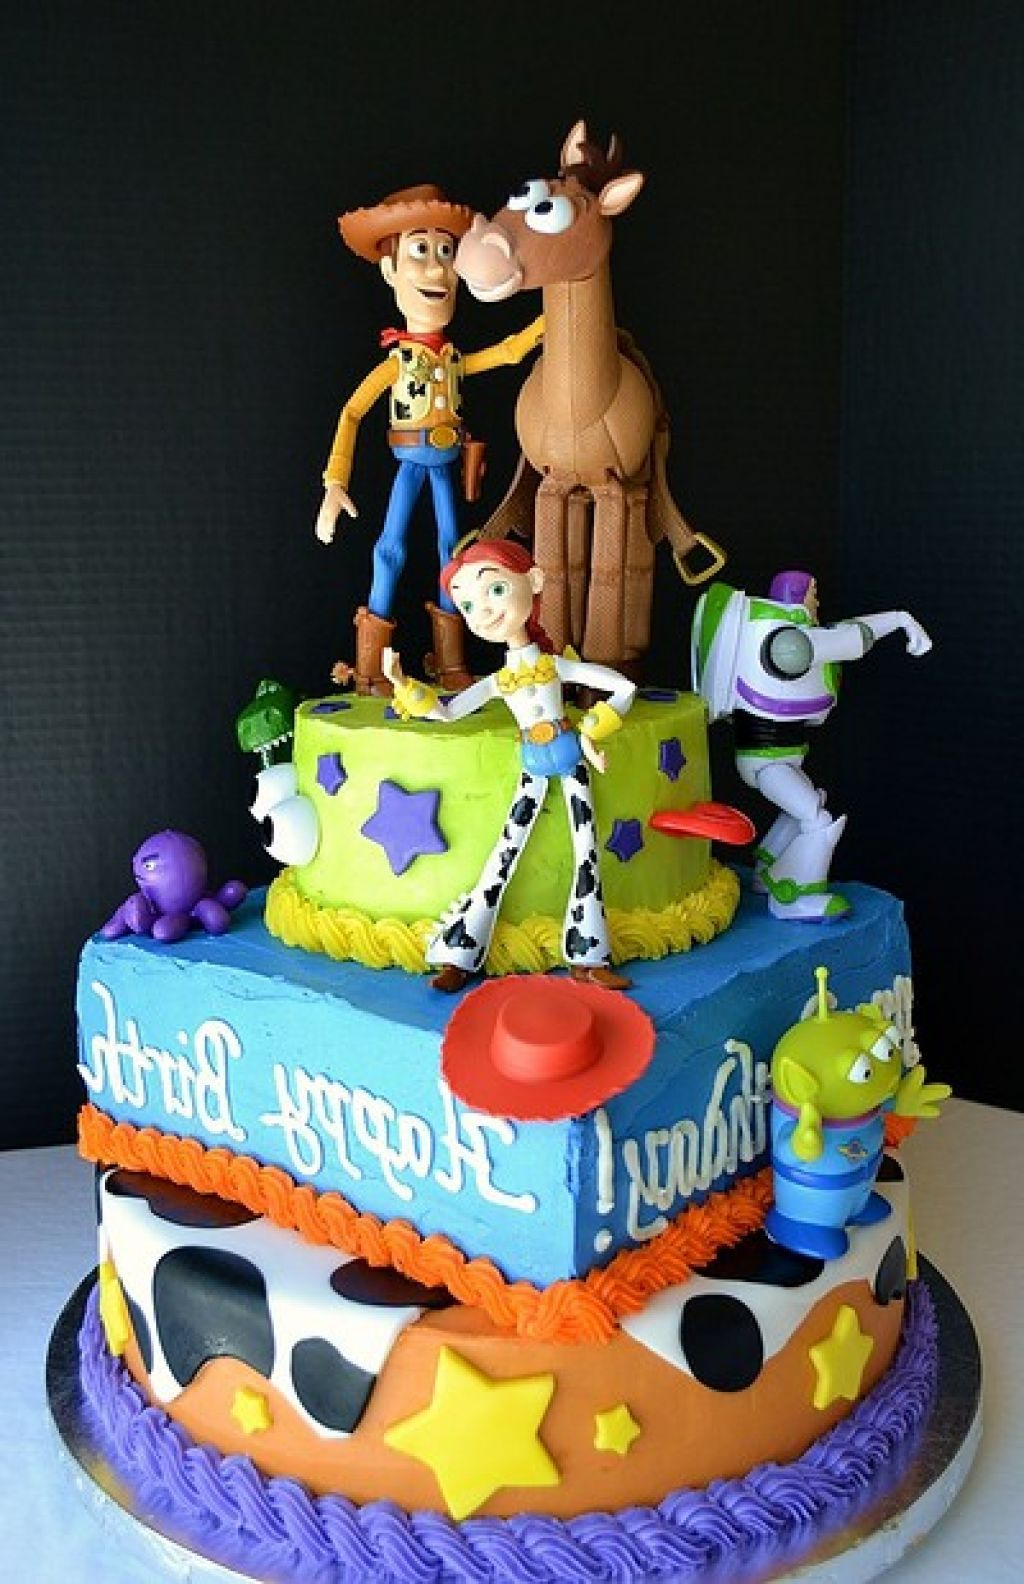 Swell Toy Story Cakes At Walmart Ny Super Foods Toy Story Birthday Personalised Birthday Cards Arneslily Jamesorg